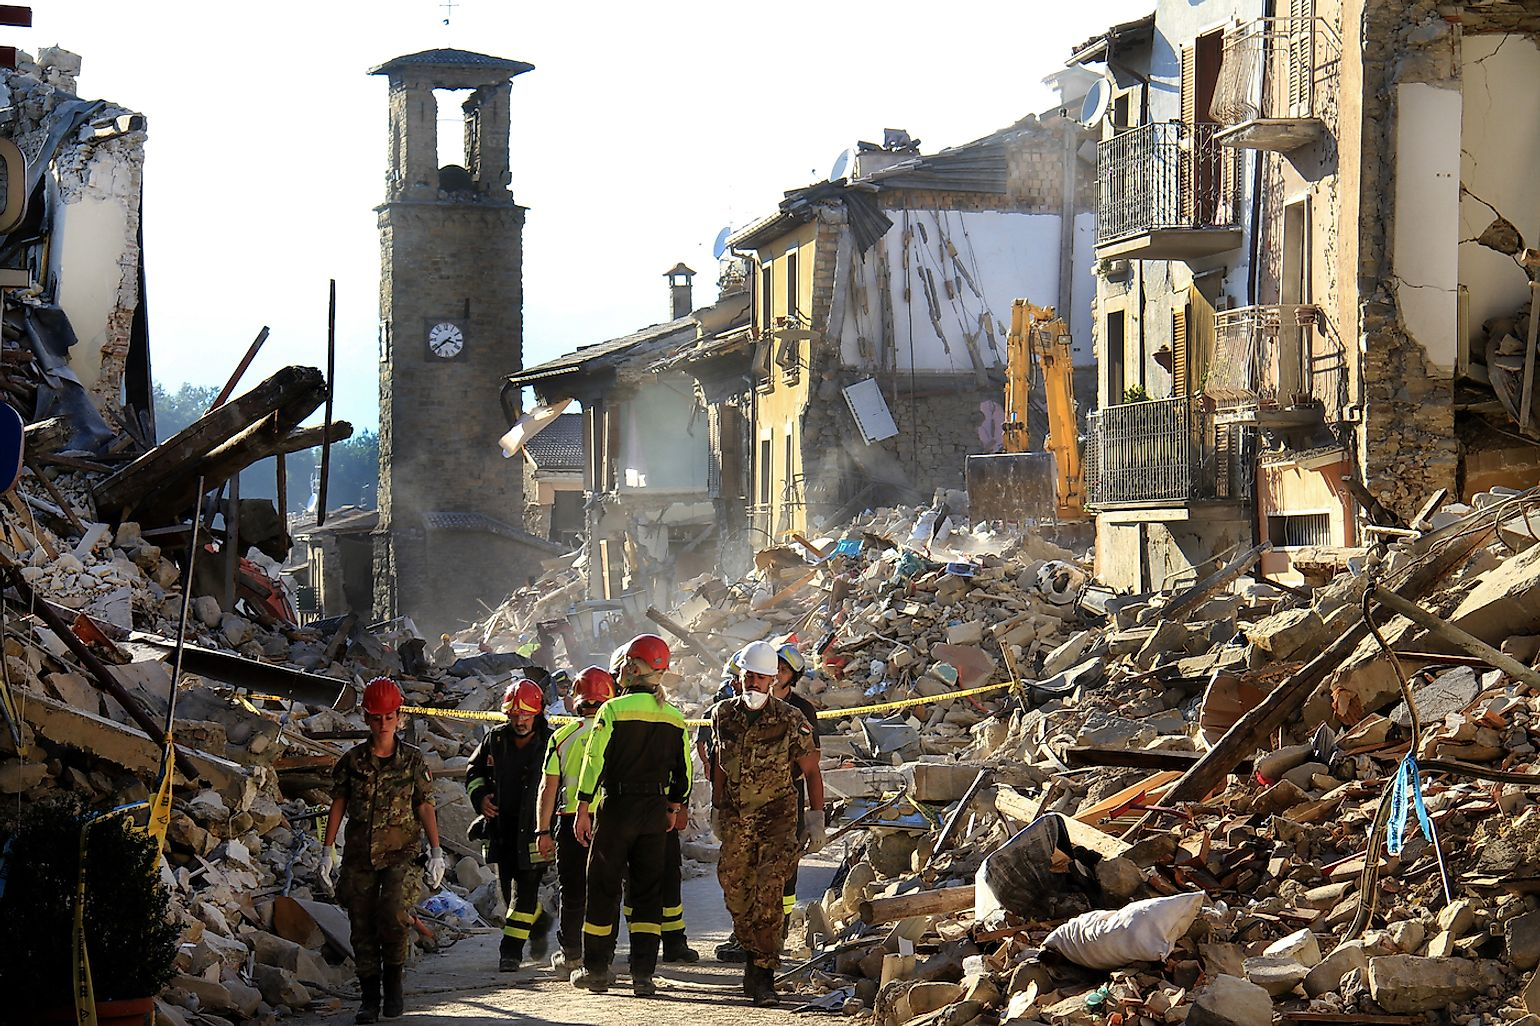 : Houses destroyed by the earthquake of August 24, 2016, in Amatrice, Italy. Image credit:  Jose Carlos Alexandre/Shutterstock.com